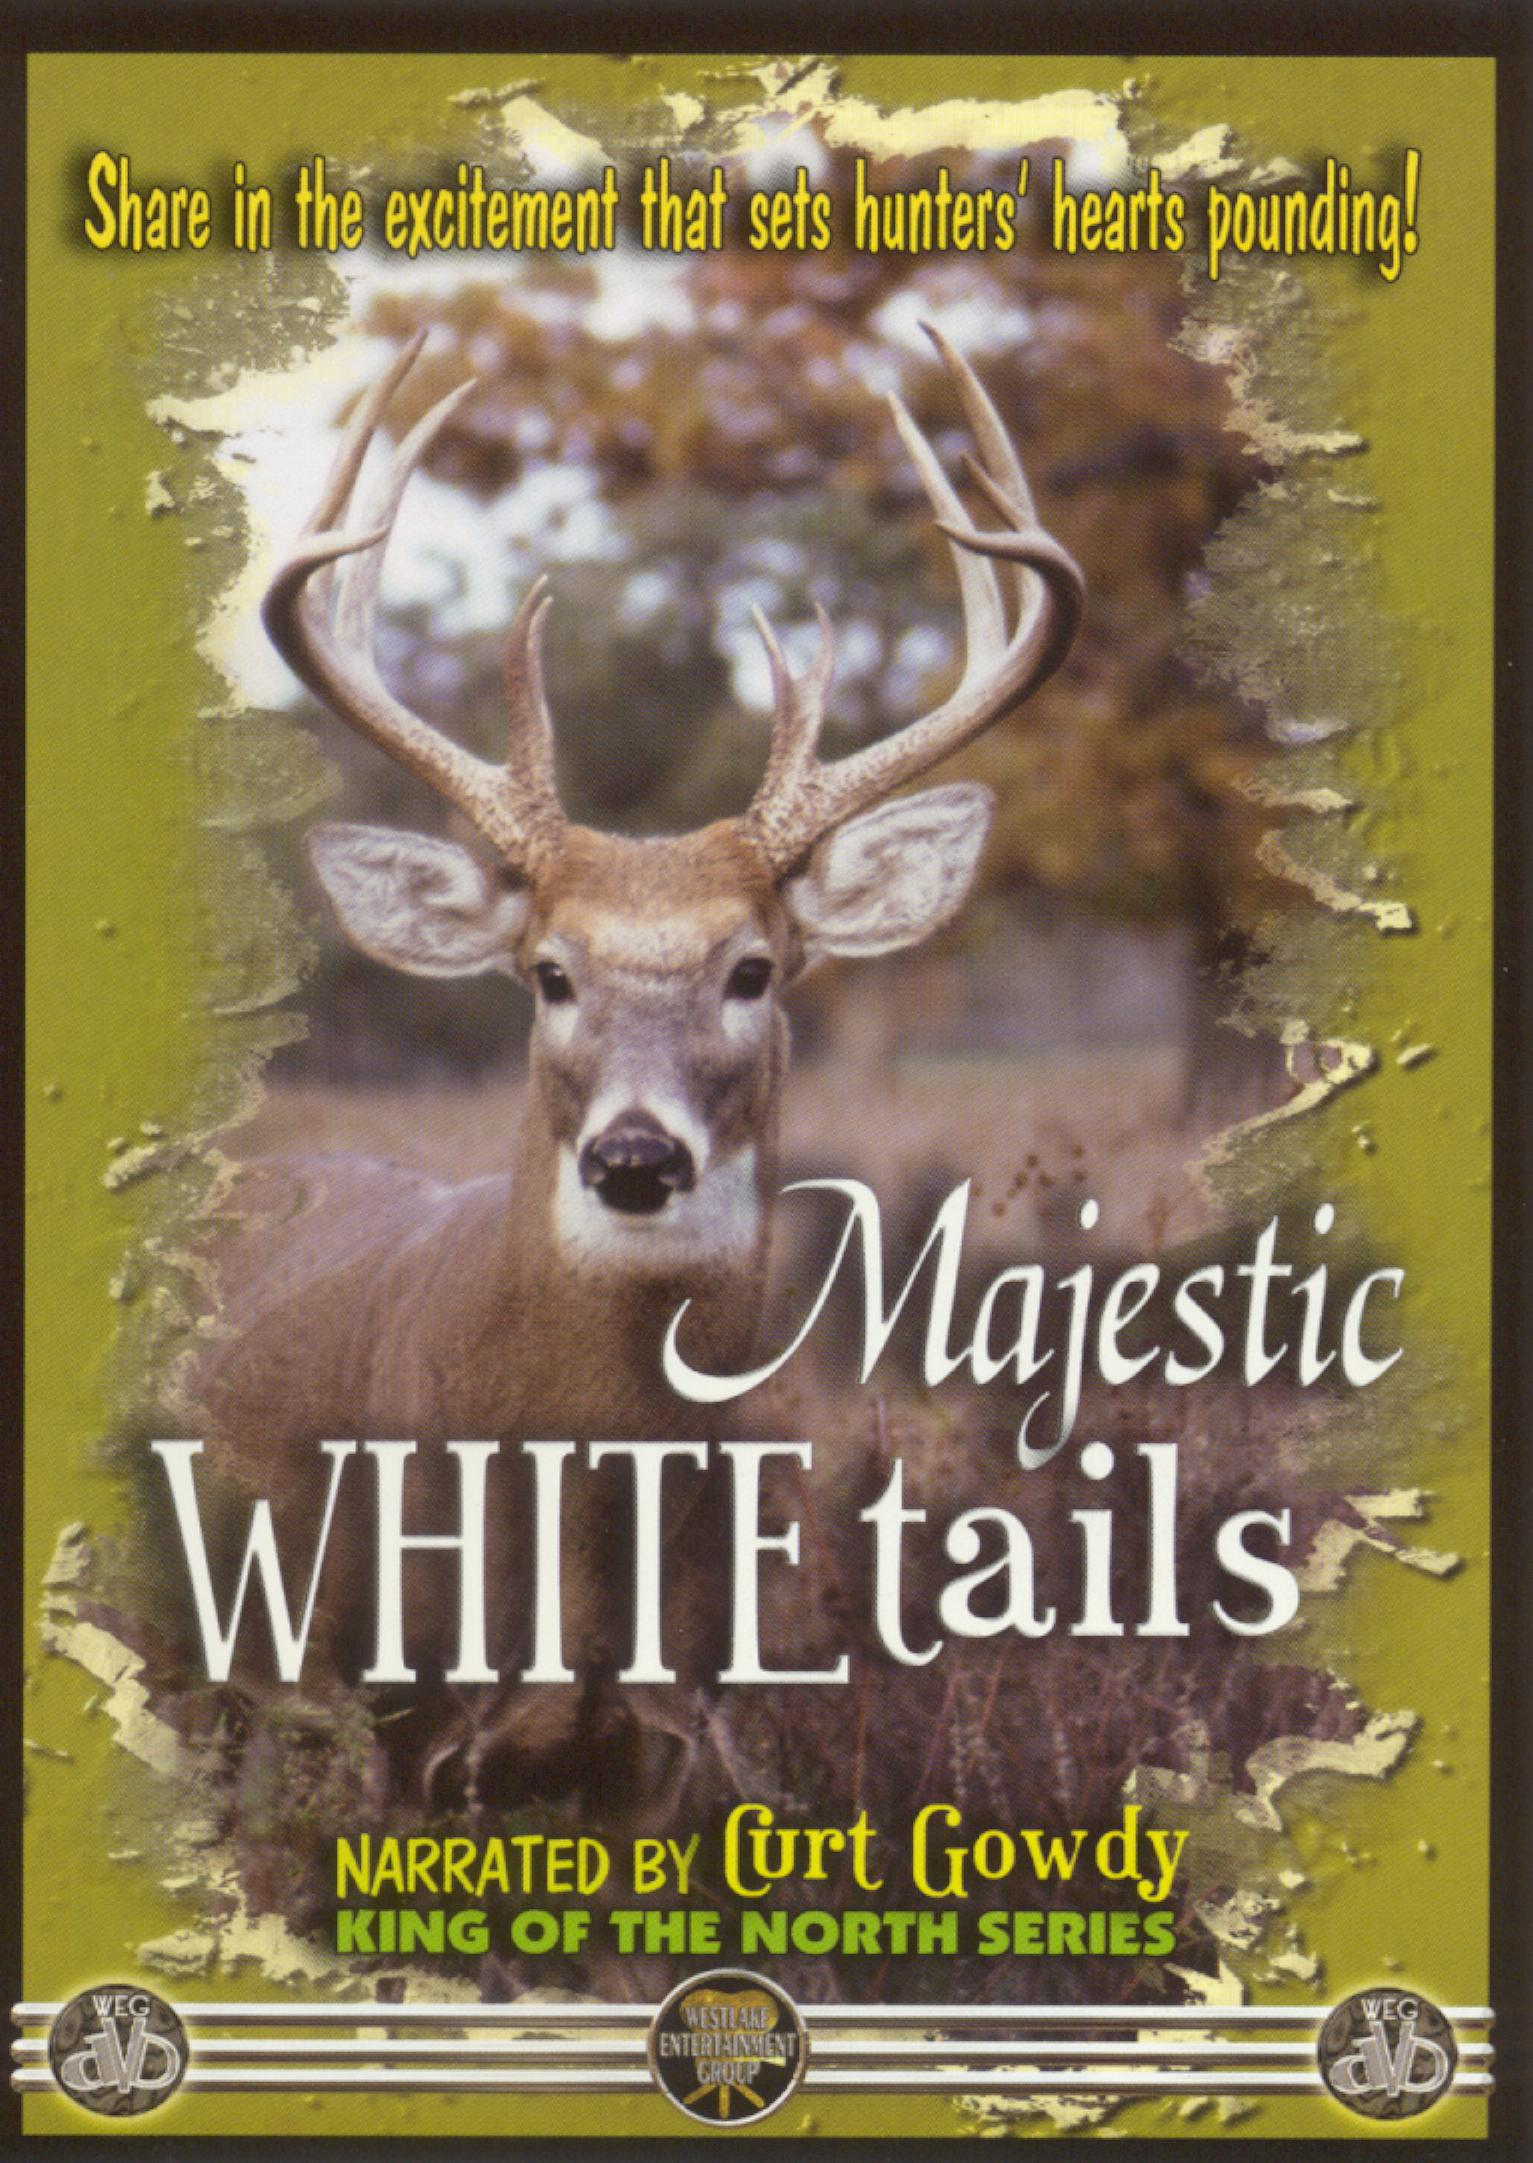 Majestic Whitetails